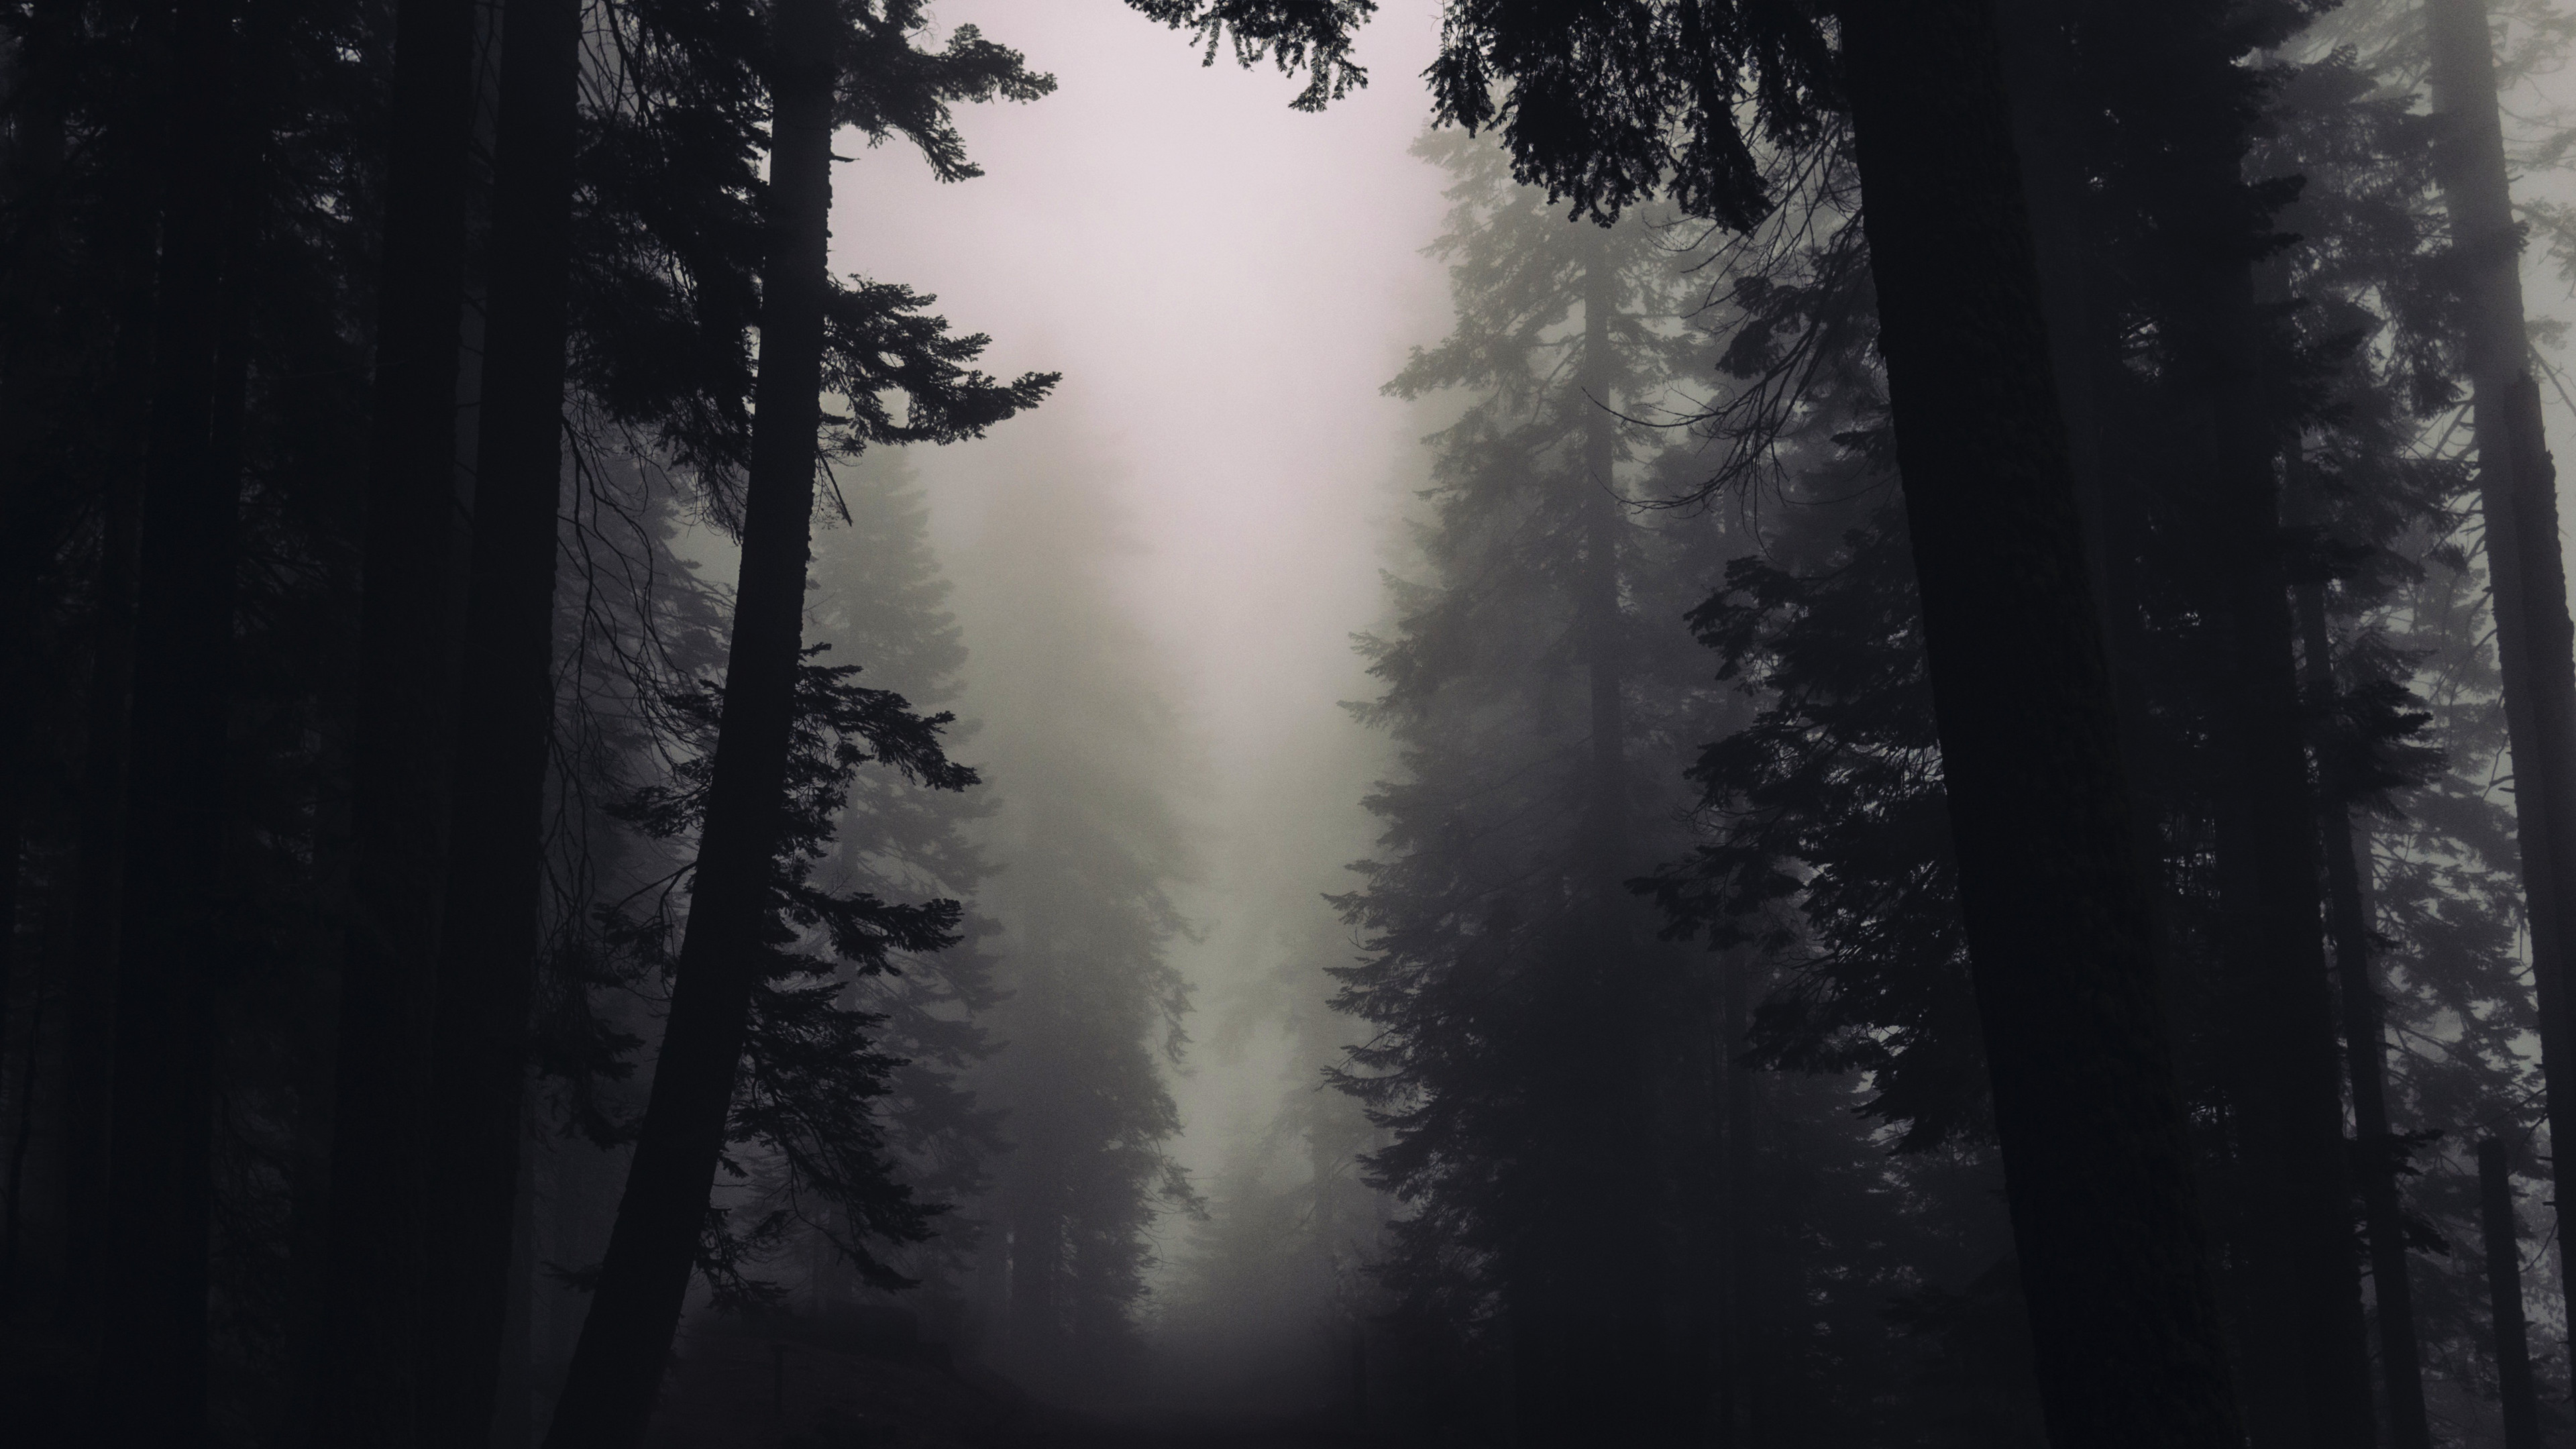 Res: 3840x2160, Gothic Forest 4K Wallpaper Download Gothic Forest 4K Wallpaper Download